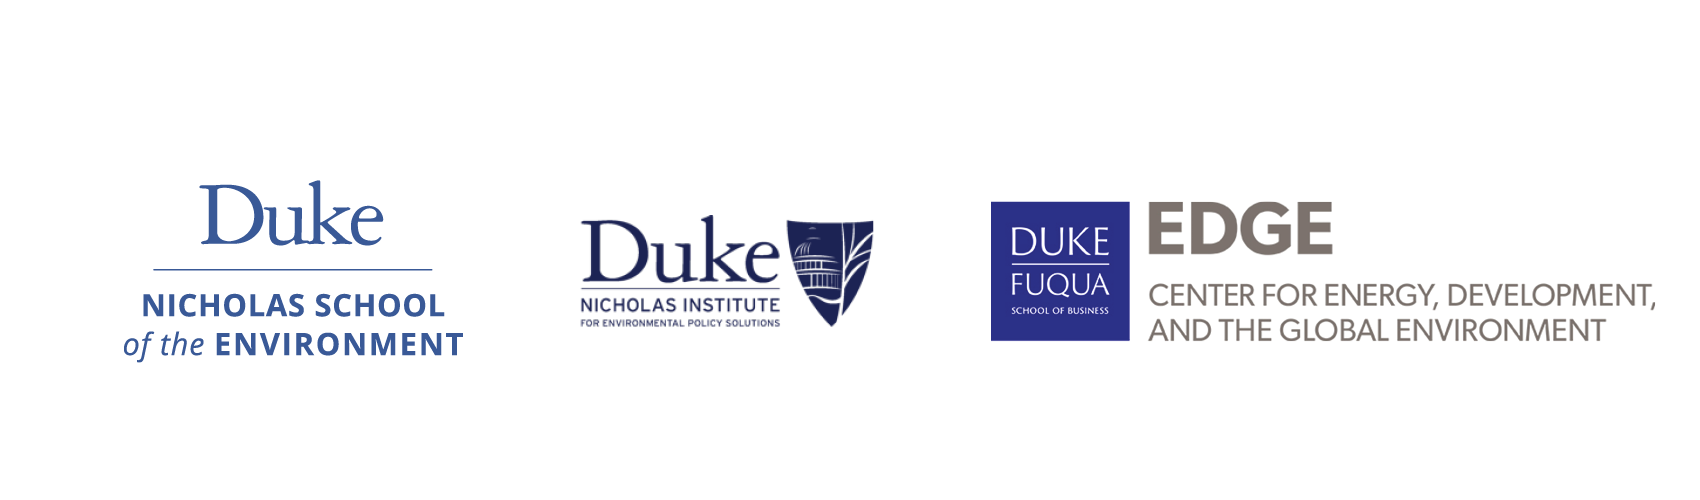 Oceans at Duke partner logos